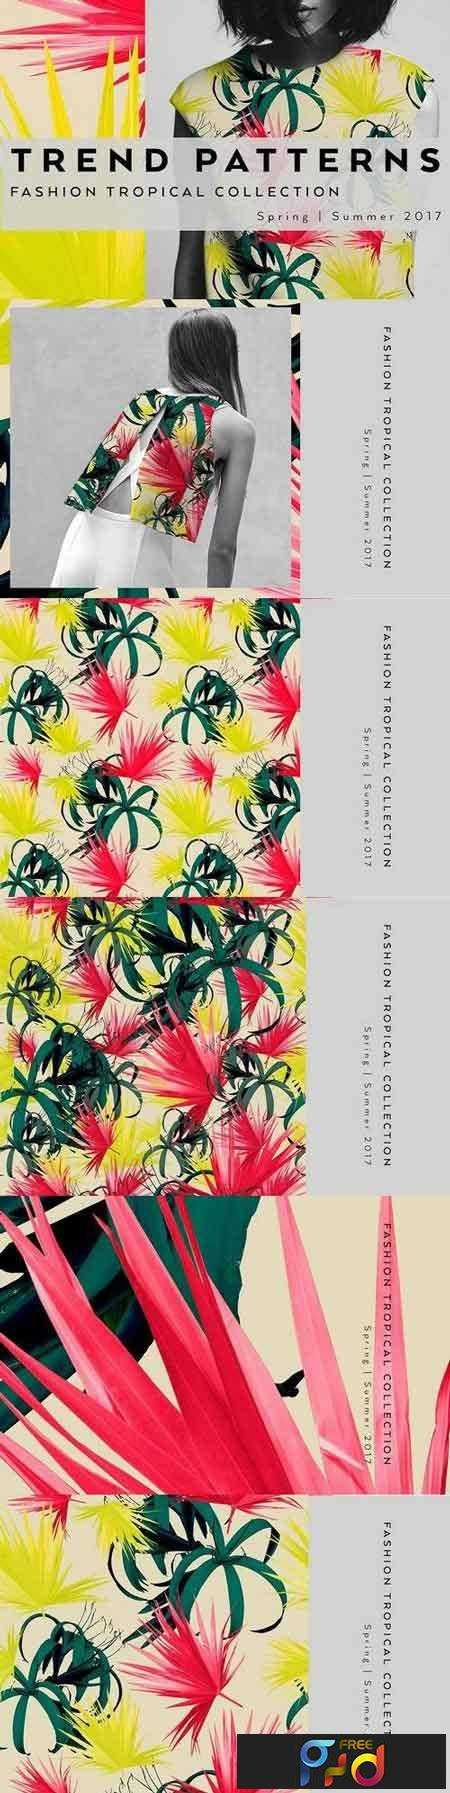 1707267 Seamless floral patterns with leaves 1347129 1